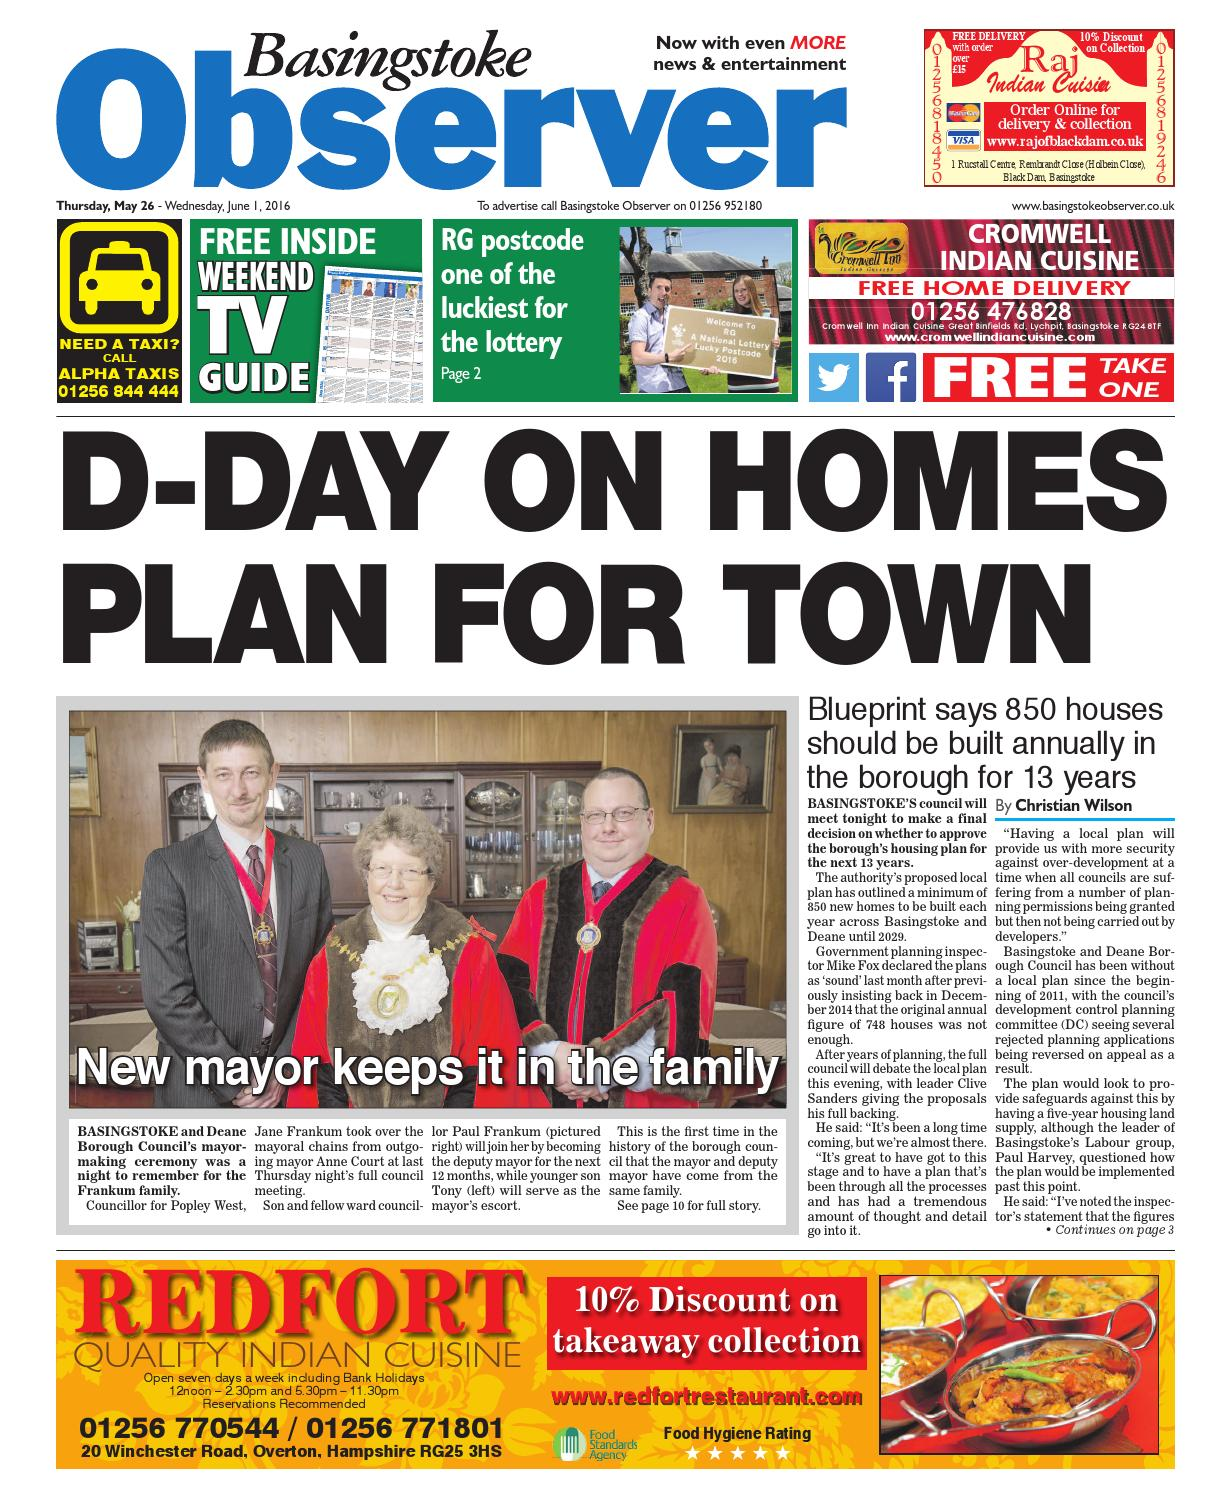 26 may 2016 basingstoke observer by Taylor Newspapers - issuu